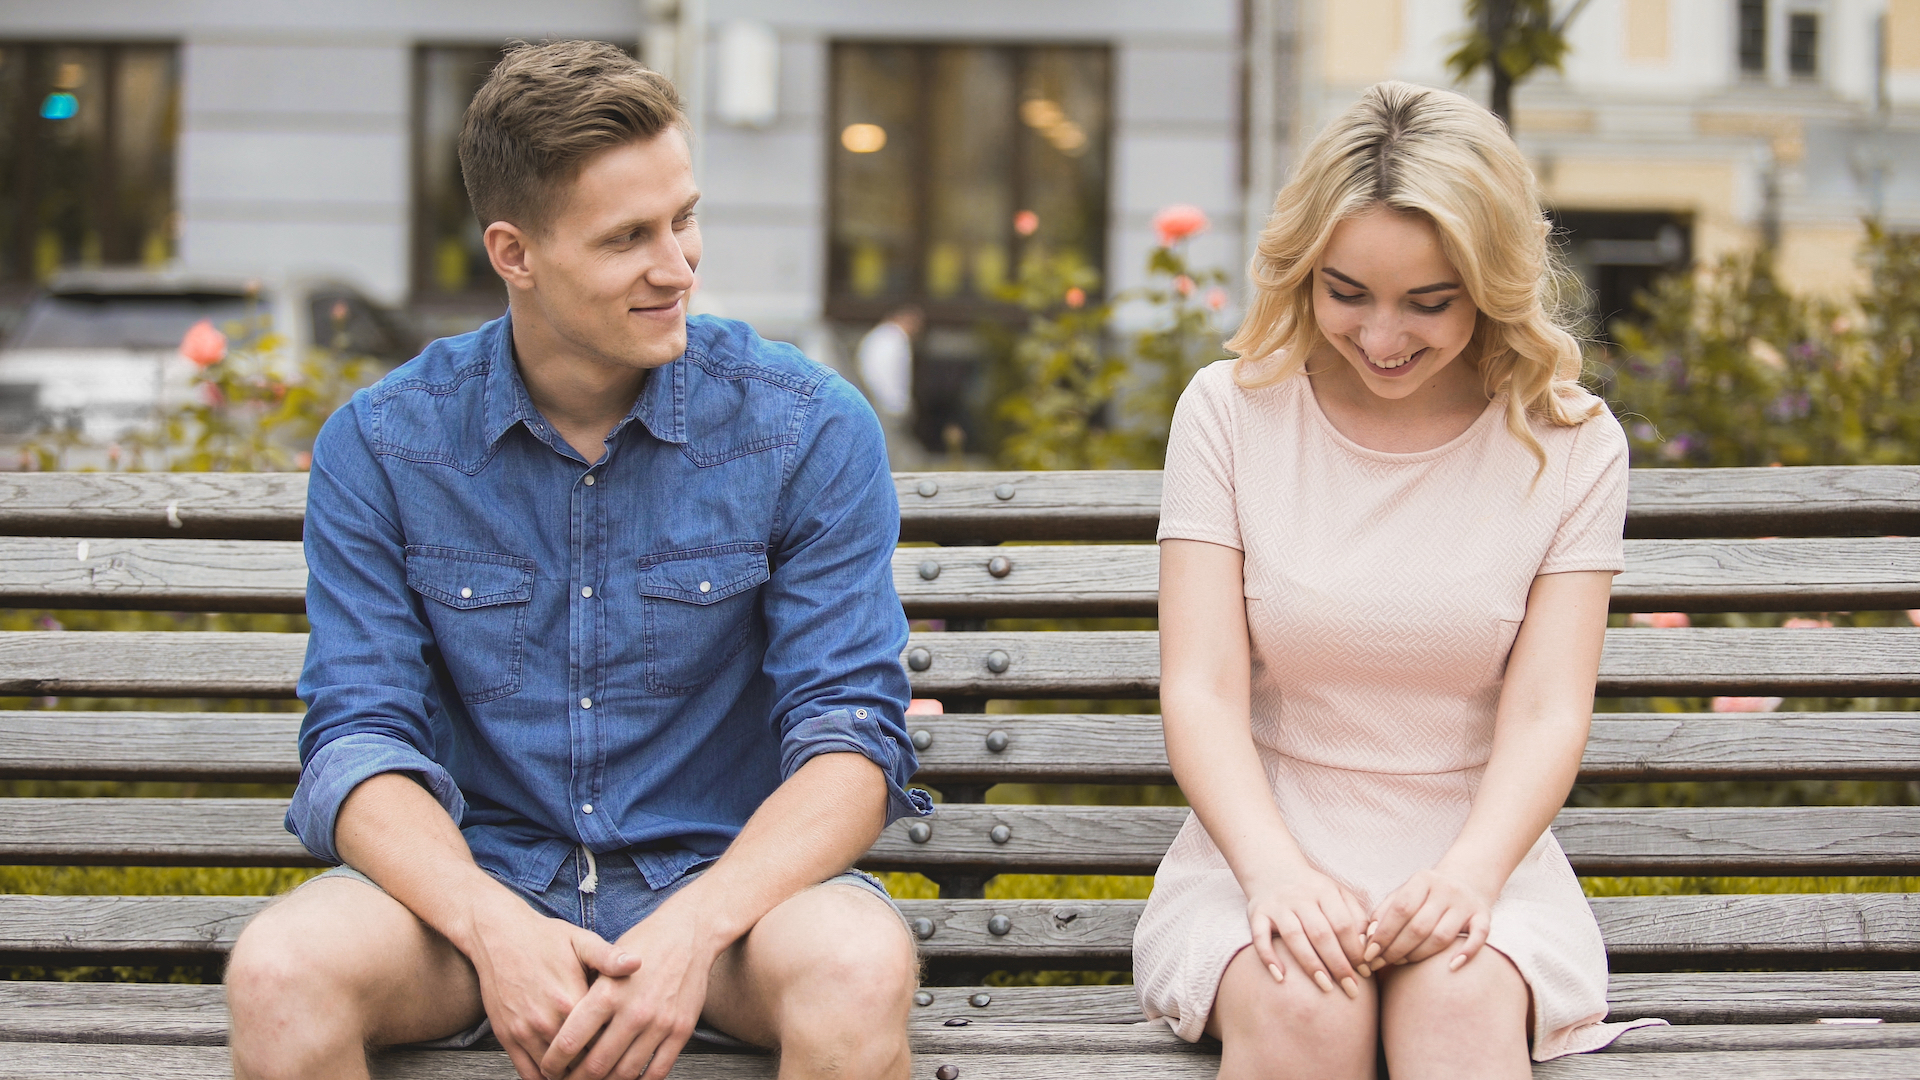 New research has shown that knowing someone is into you makes them more attractive to you, while uncertainty may make them seem less attractive.